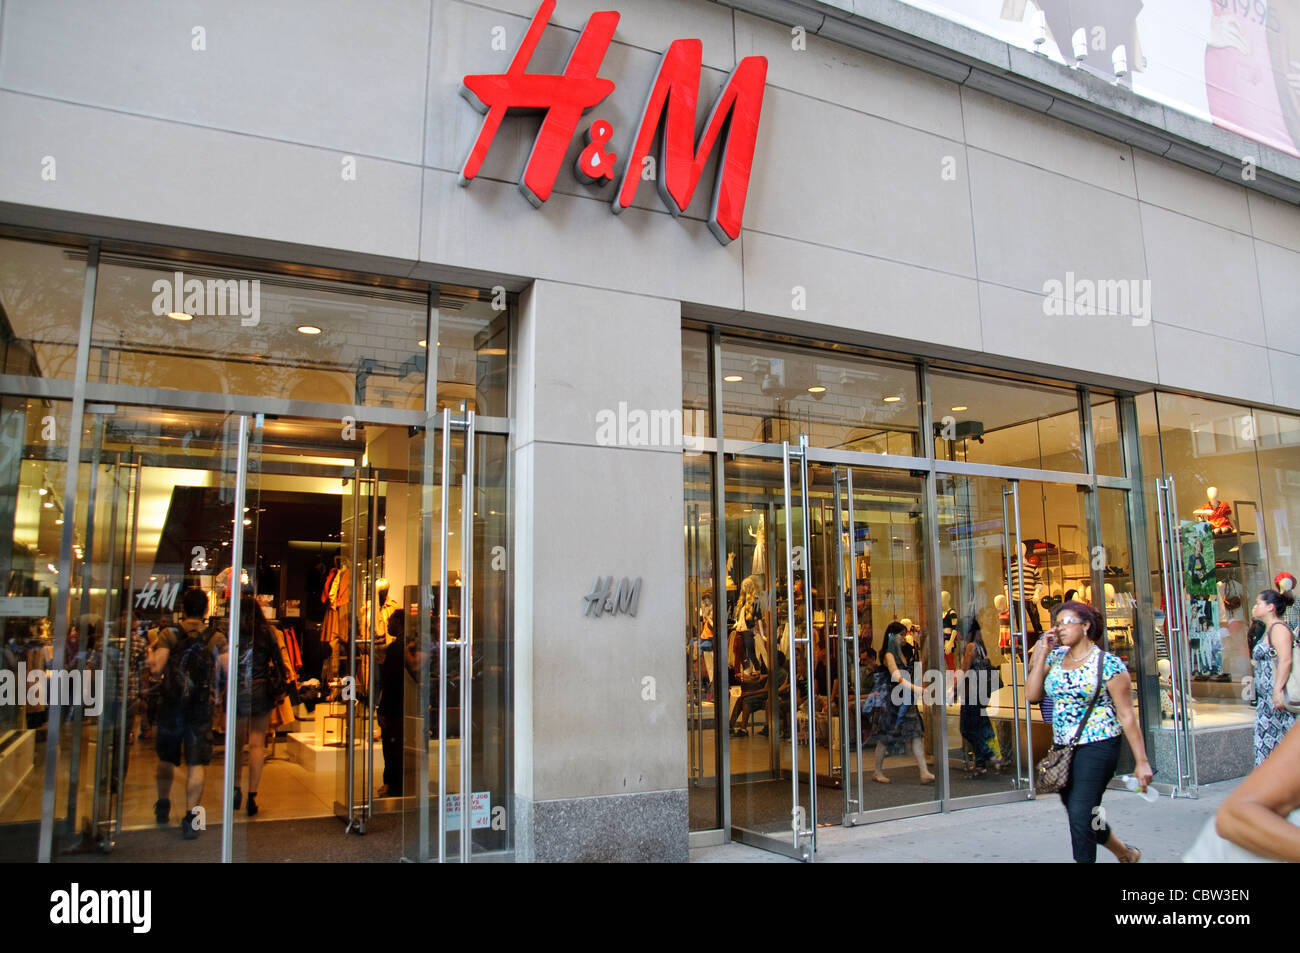 H M Retail Clothing Store August Rush Hour Afternoon 34 Th Street Stock Photo Alamy